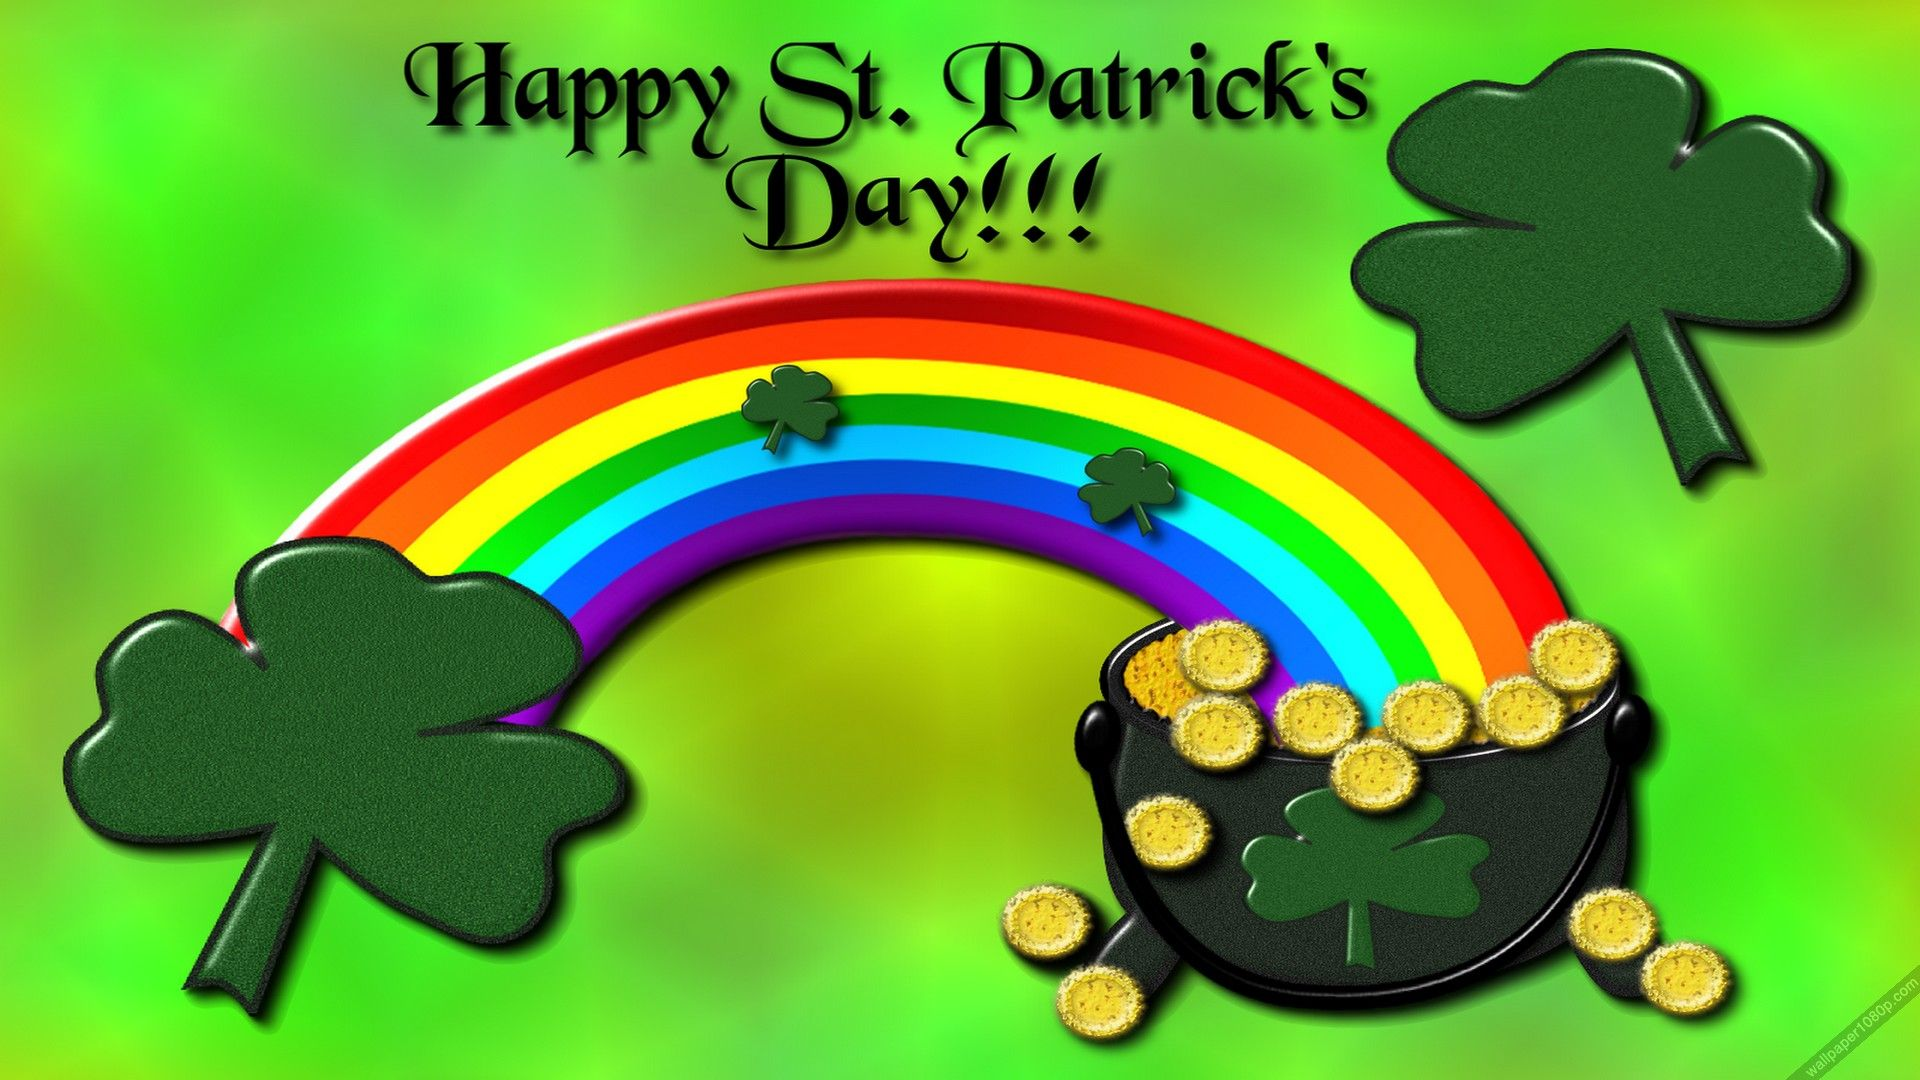 2 Pot Of God St Patrick S Day Wallpaper Hd St Patricks Day Wallpaper St Patricks Day Pictures St Patricks Day Clipart